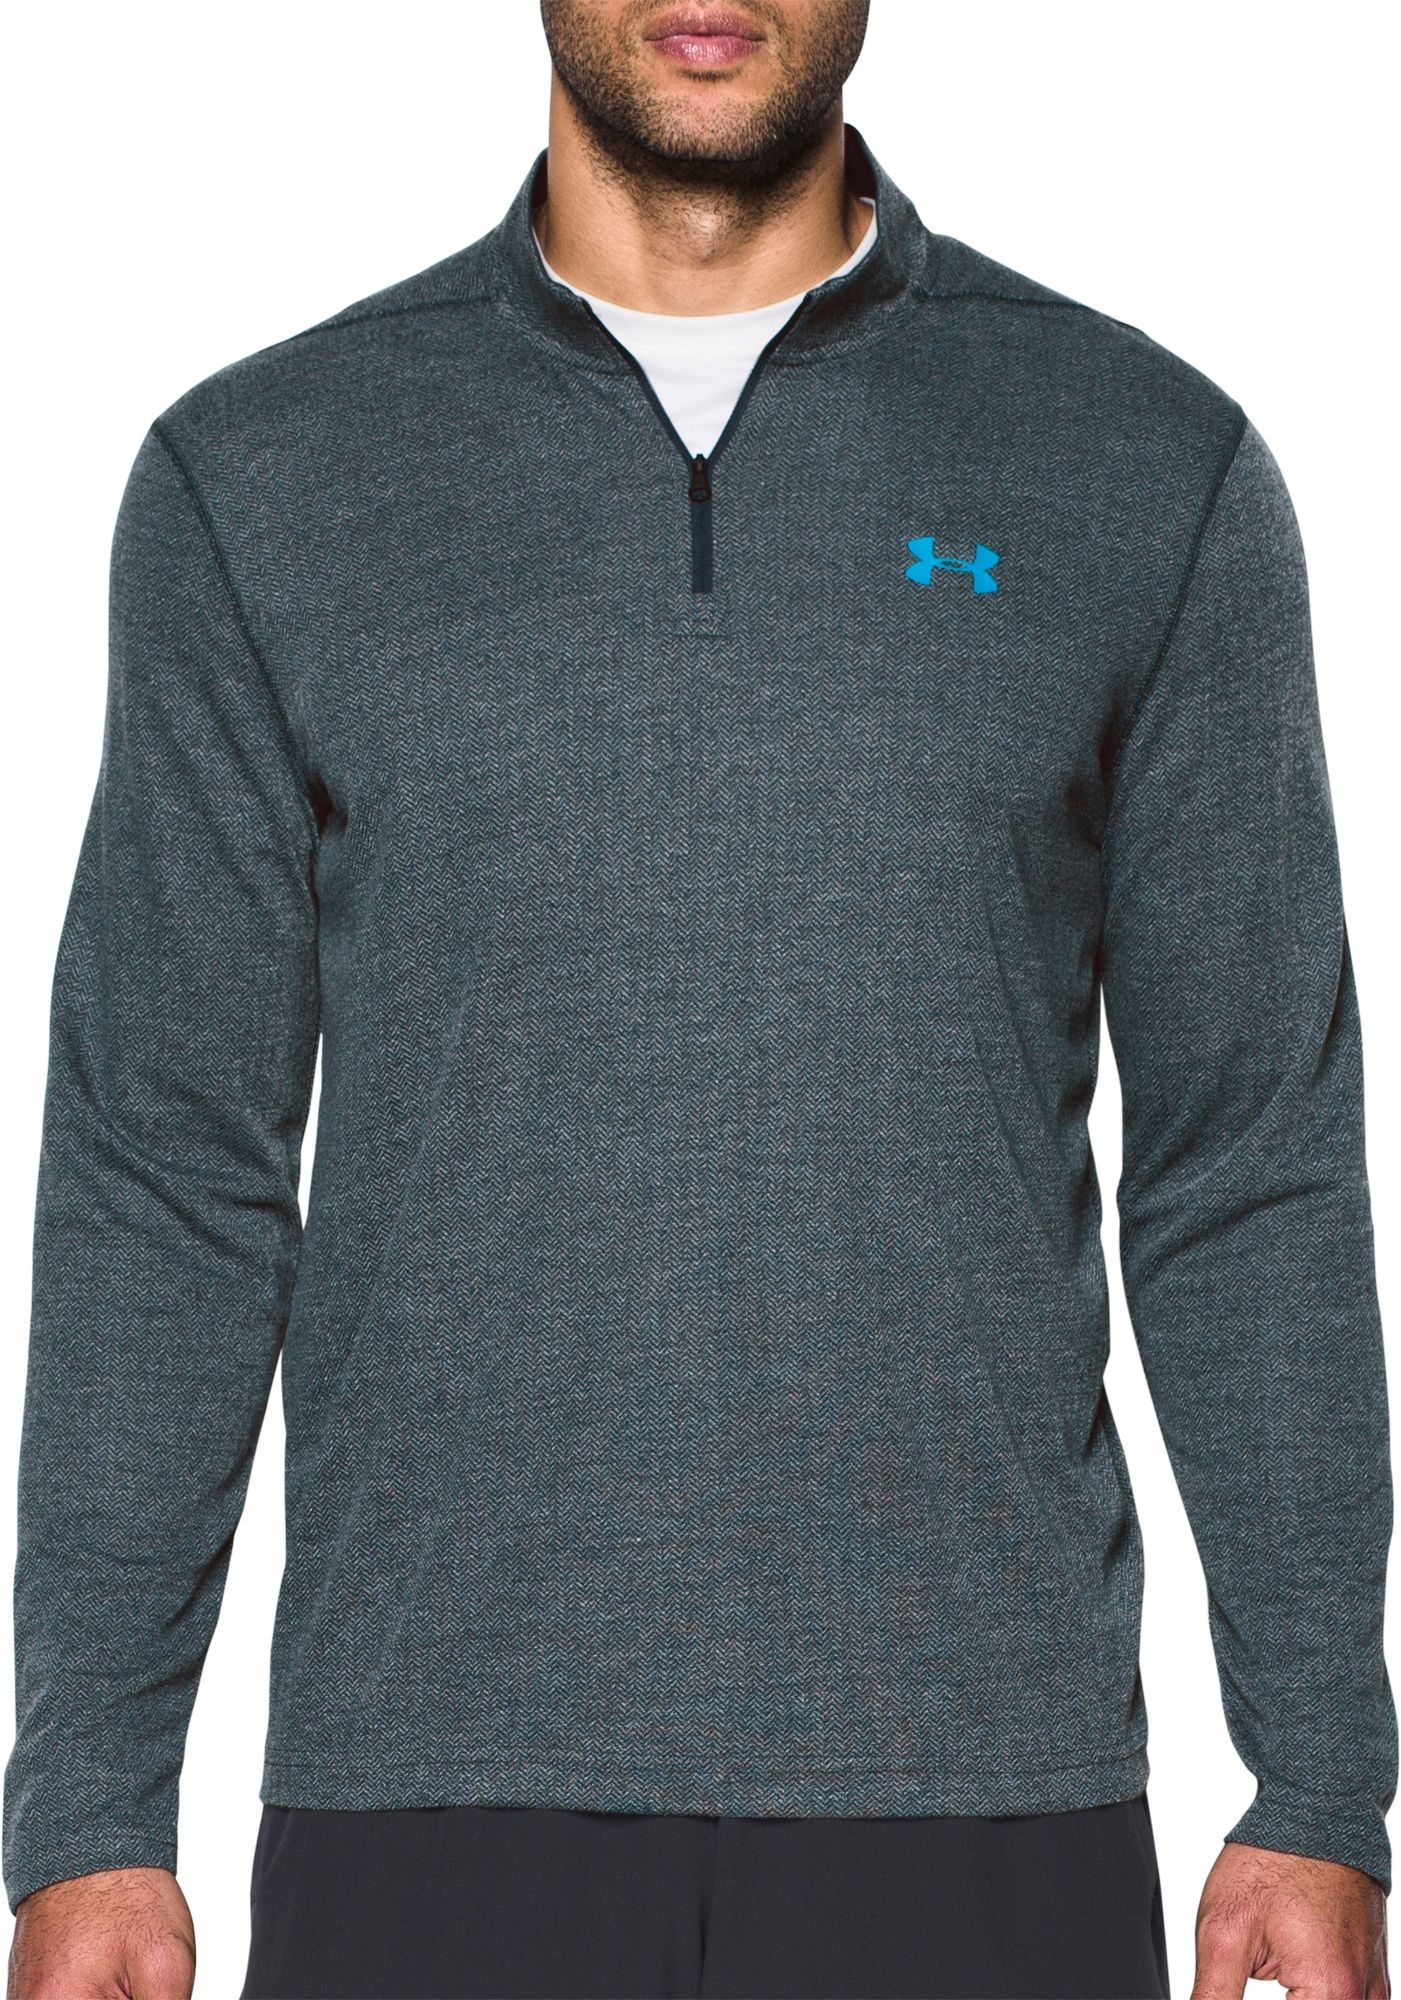 Men's Half Zip Pullovers & Shirts | DICK'S Sporting Goods